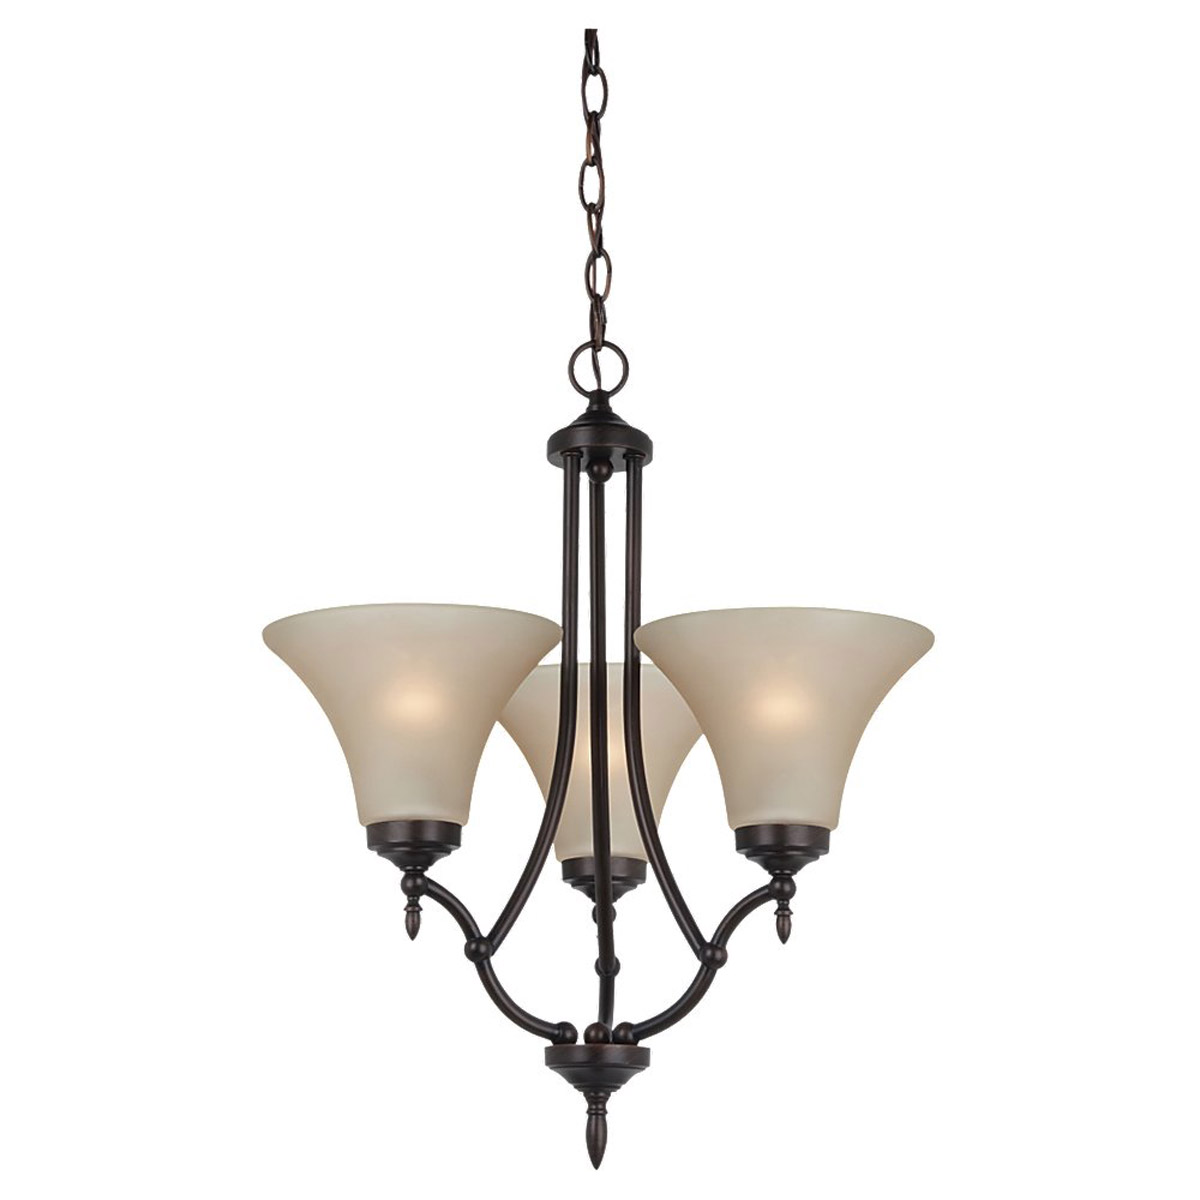 Sea Gull Lighting Montreal 3 Light Chandelier in Burnt Sienna 31180BLE-710